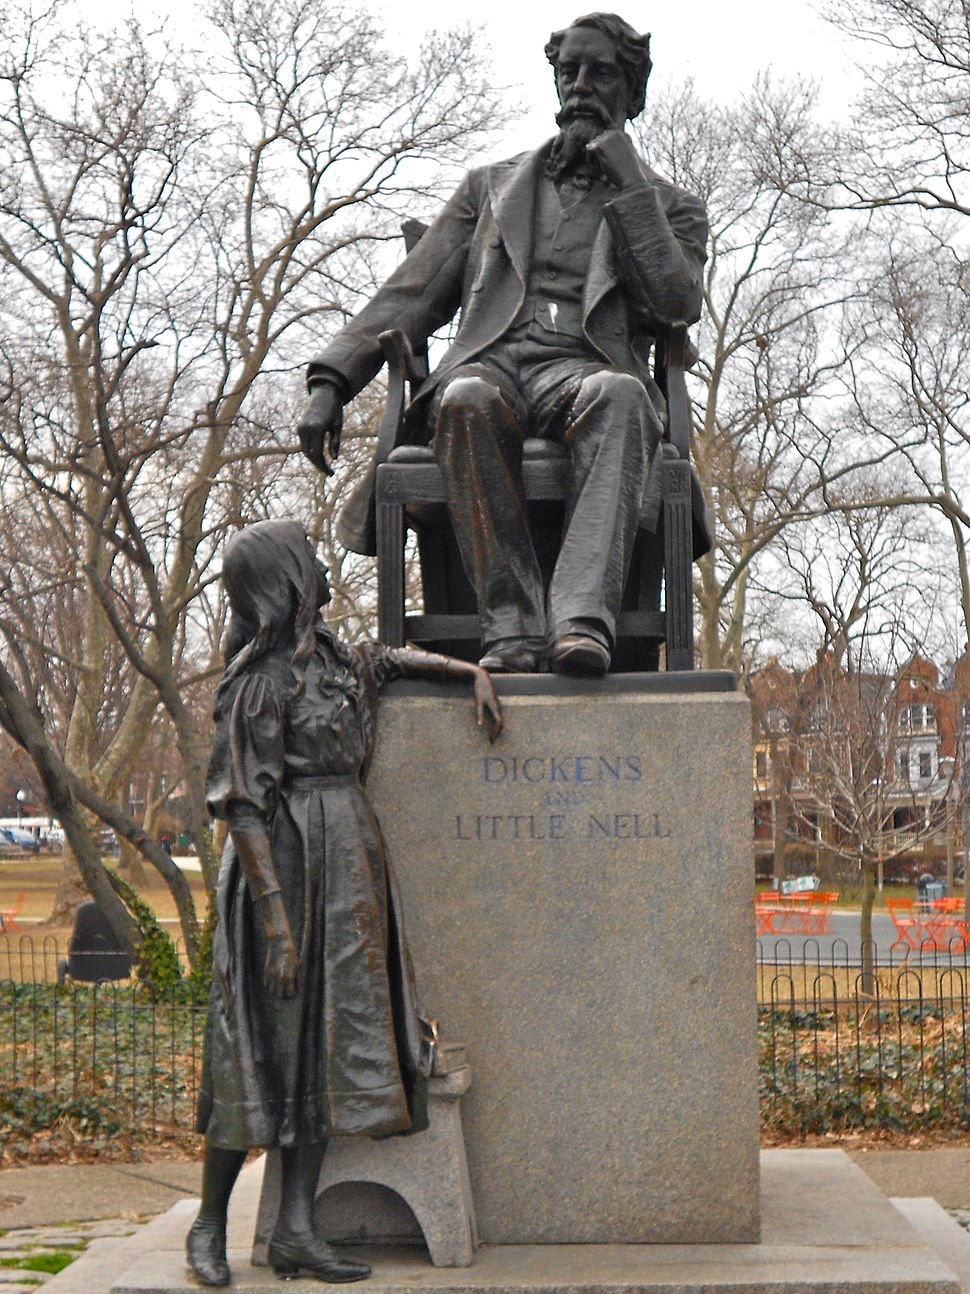 Dickens and Nell Philly